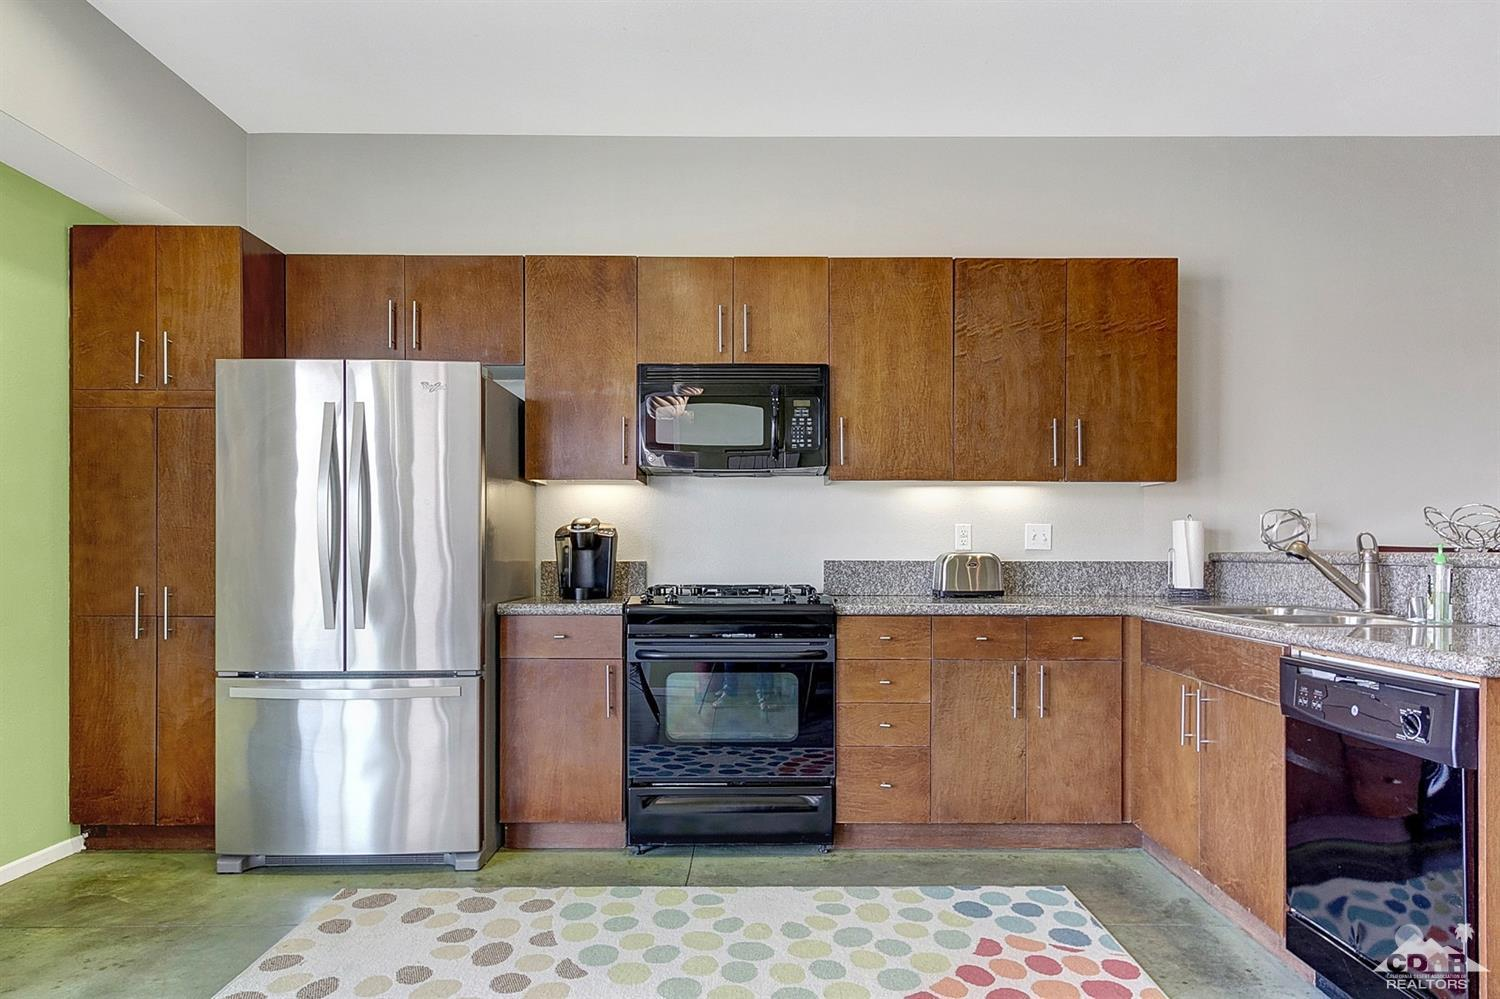 218 Sandy Point Trail, Palm Springs, California 92262, 2 Bedrooms Bedrooms, ,3 BathroomsBathrooms,Residential,Sold,218 Sandy Point Trail,219013679